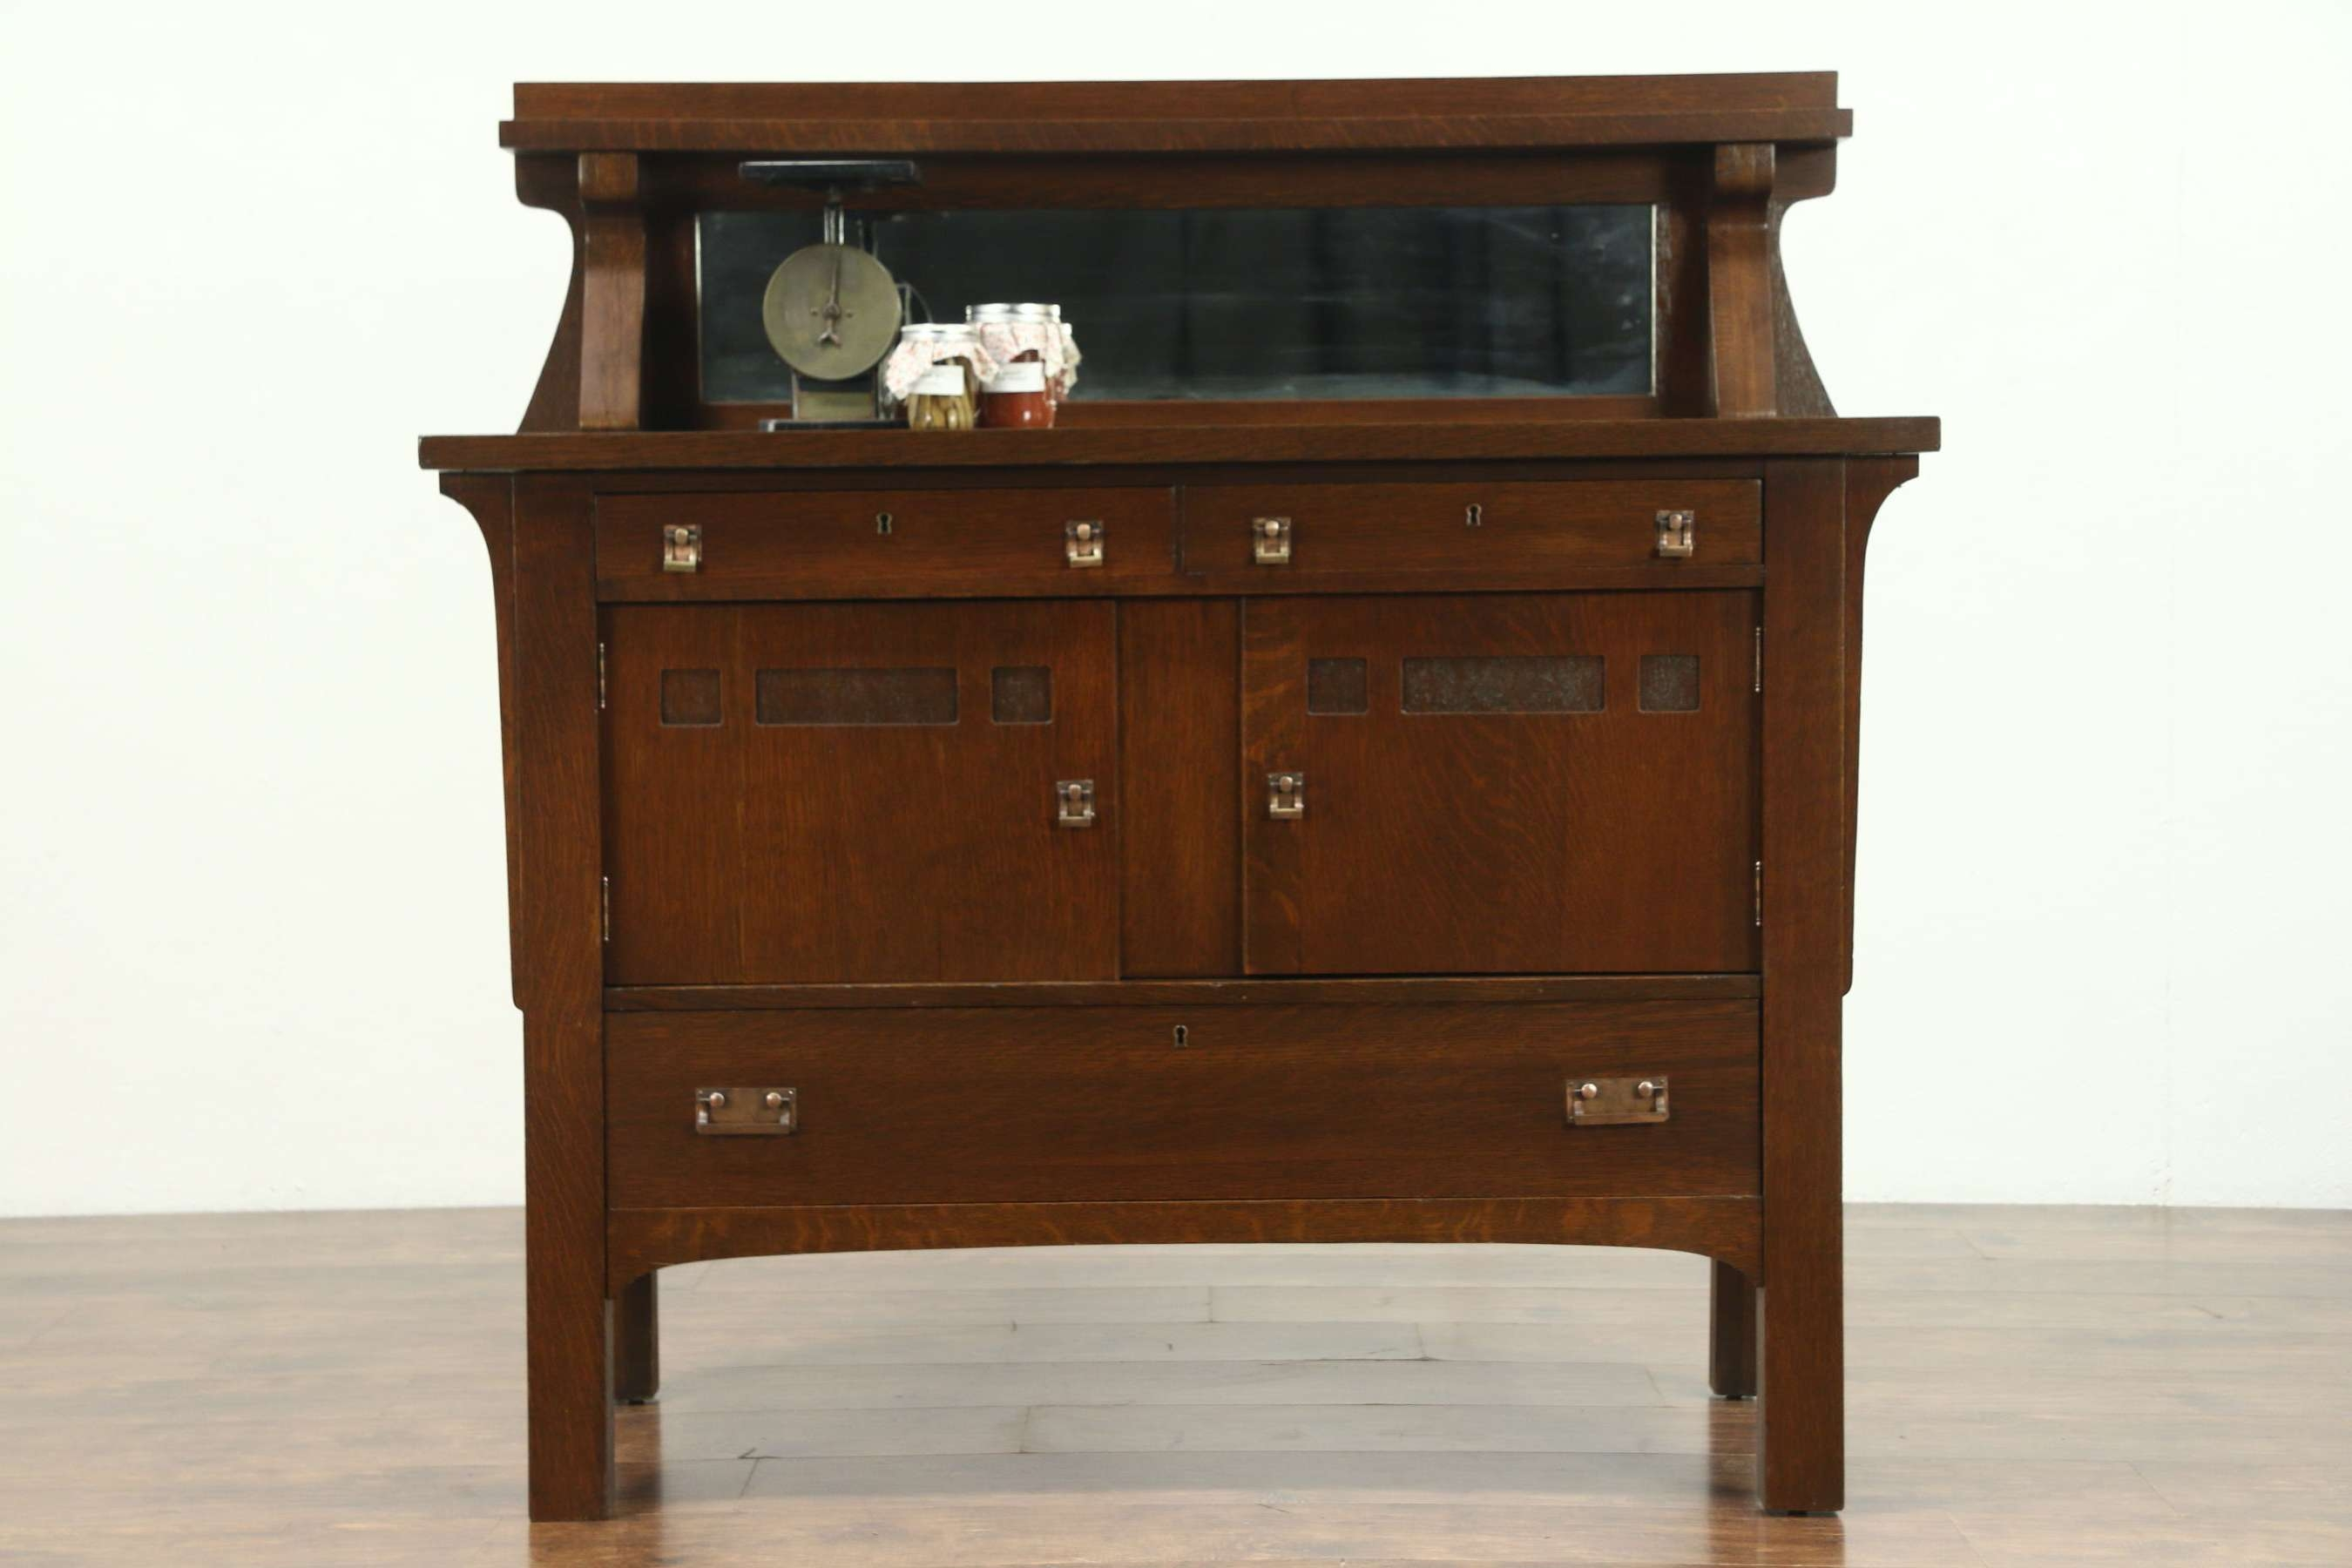 Arts & Crafts Mission Oak Antique Sideboard Server Or Craftsman Pertaining To Antique Sideboards With Mirror (View 12 of 20)